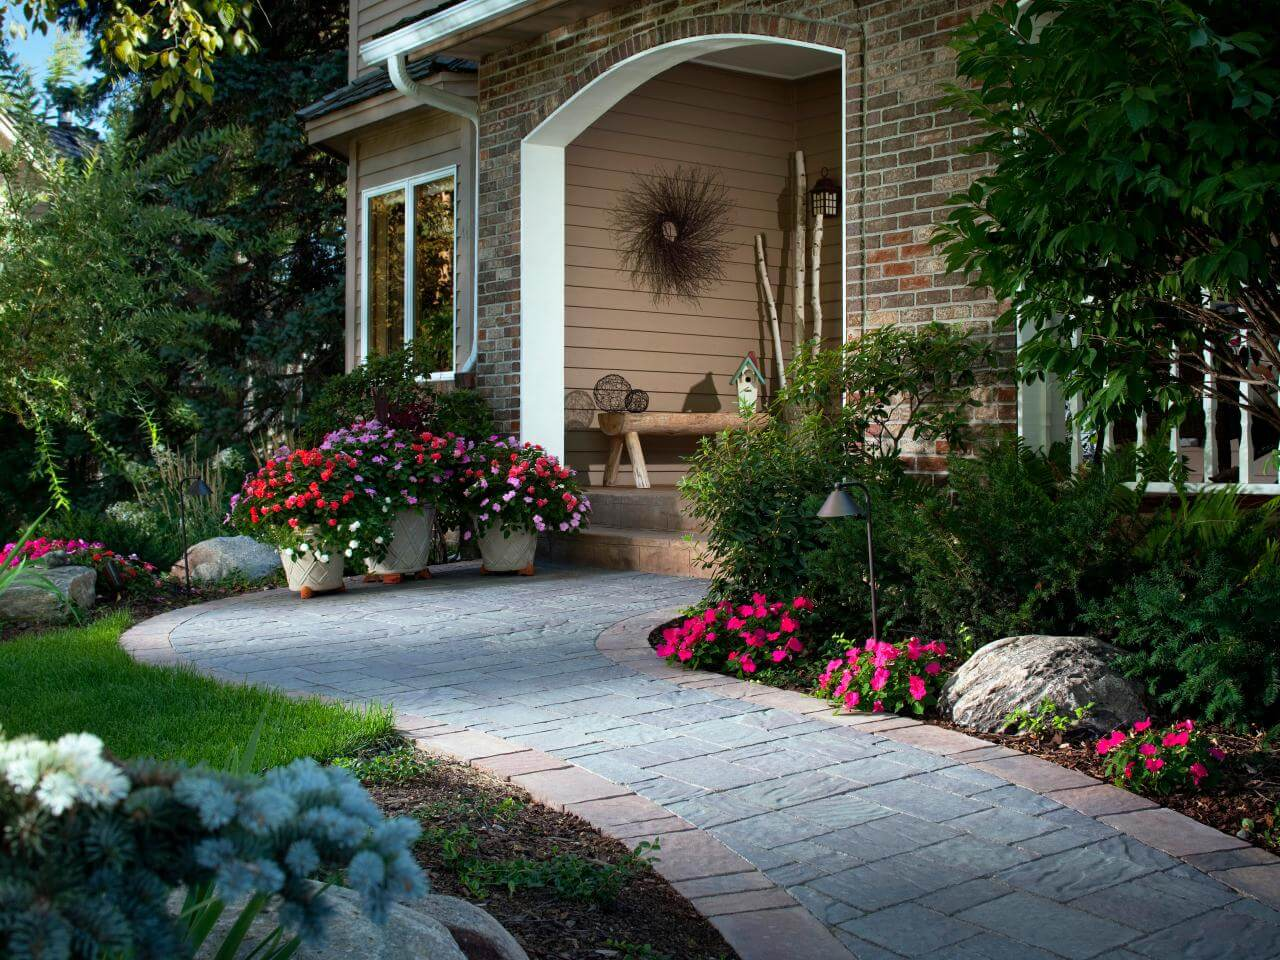 Imagine what pavers and plants can do for your front yard